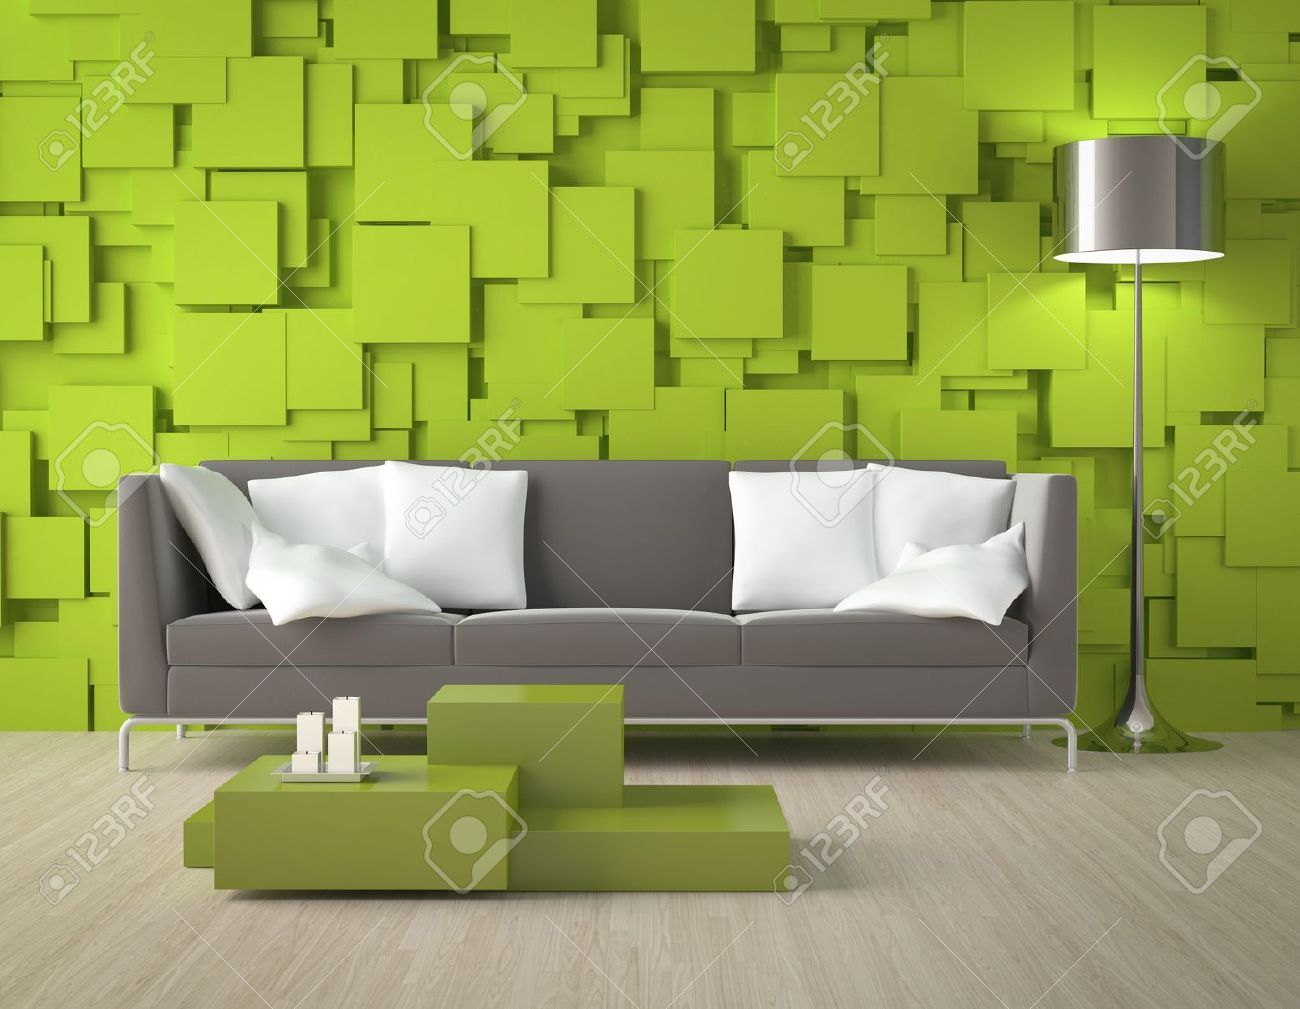 Green Furniture Design Unique Interior Design Of A Modern Interior Room With Green Wall Made . Inspiration